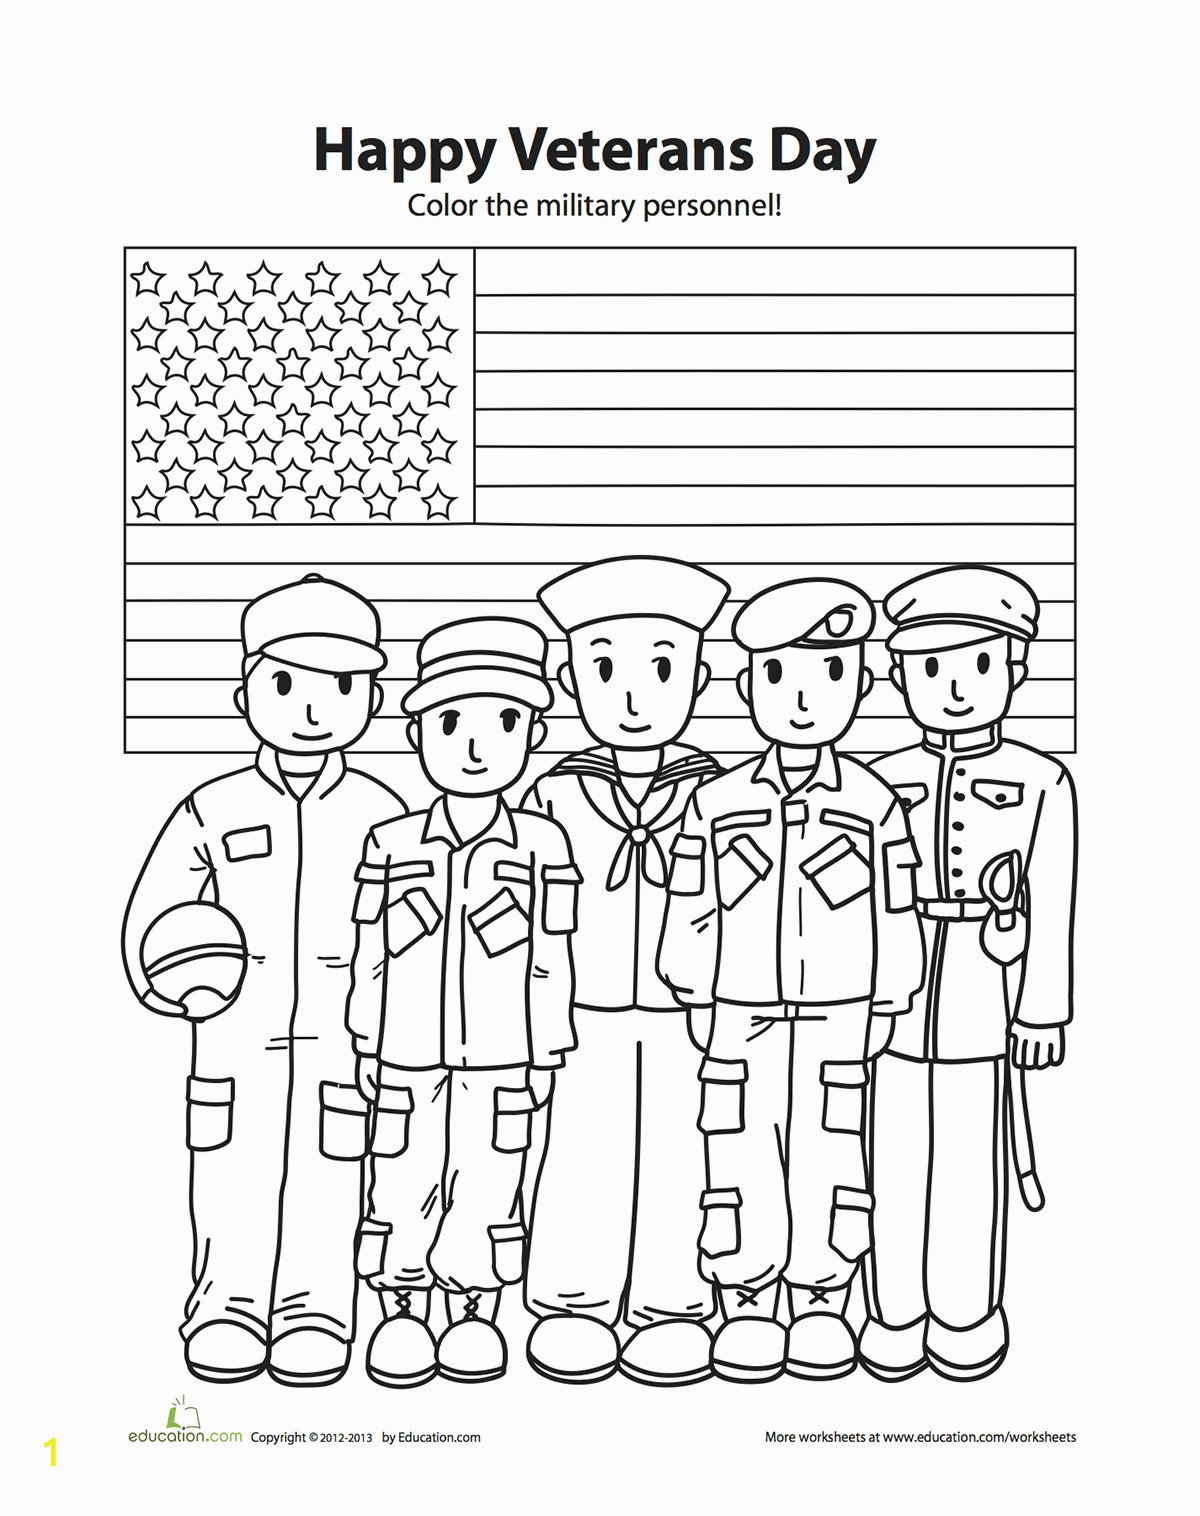 astonishing veterans day coloring page picture inspirations free pages for kids